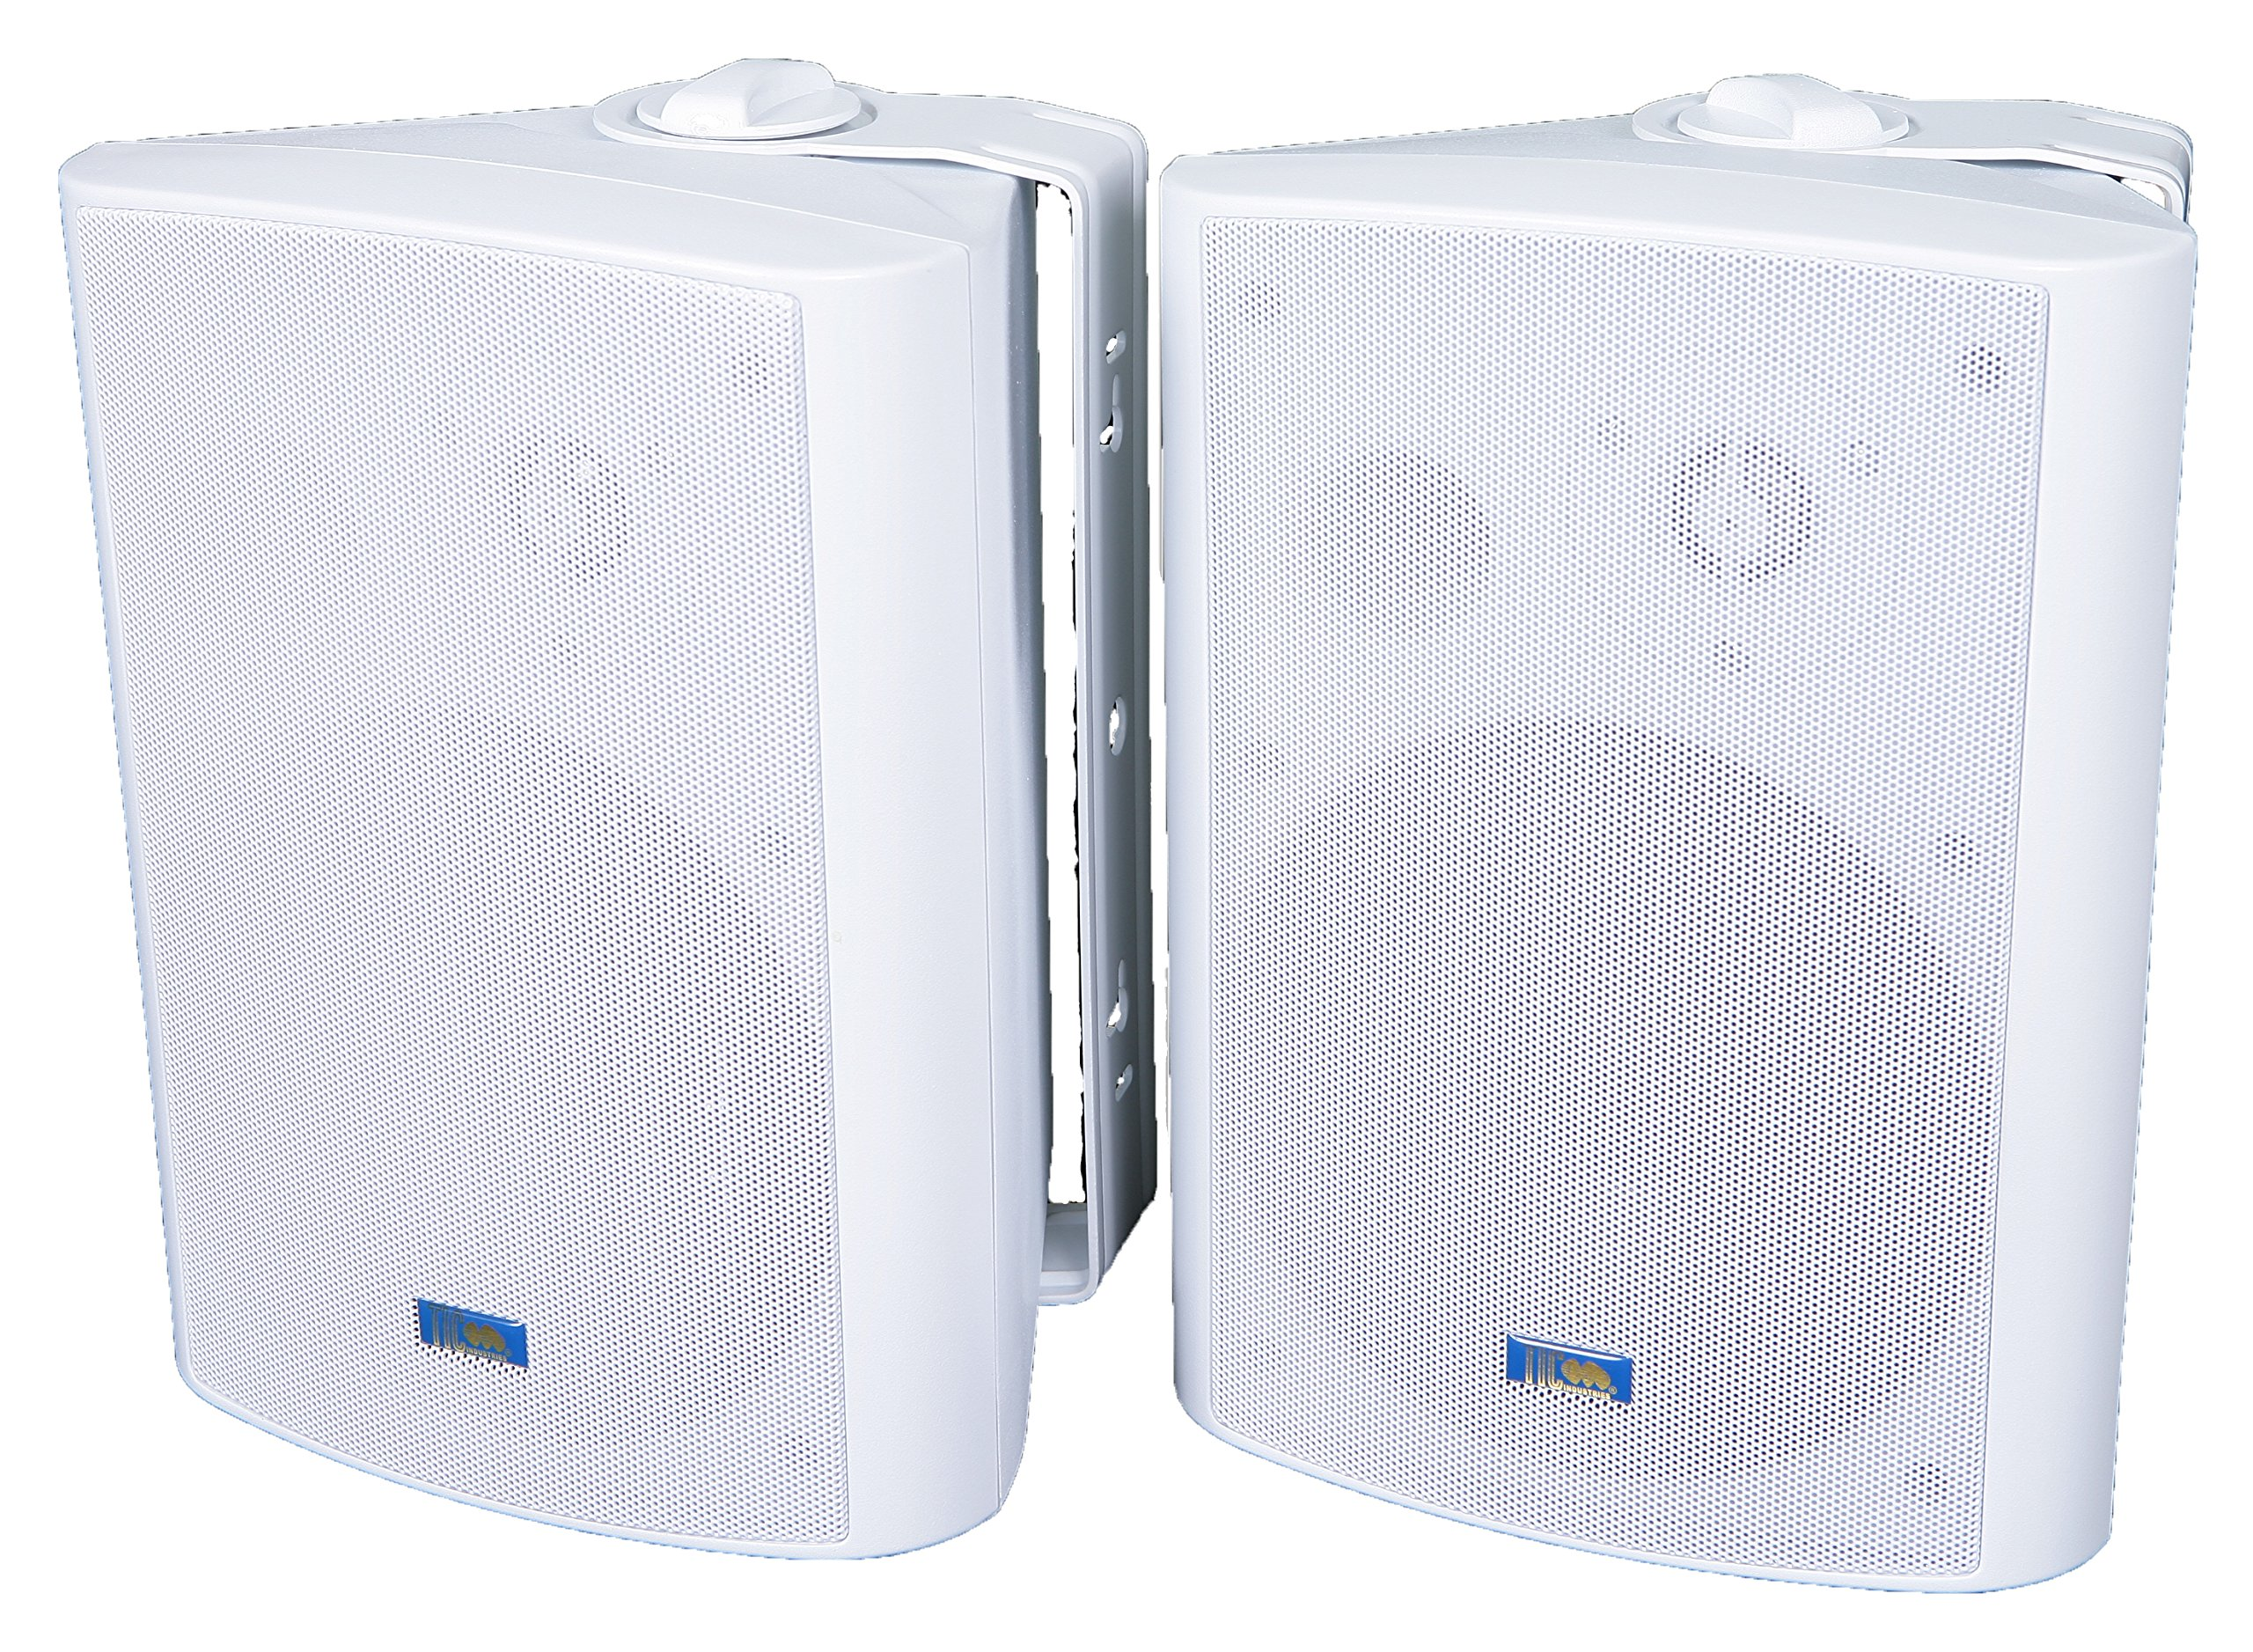 TIC ASP120-W 6.5'' Weather-Resistant Outdoor Patio Speakers with 70v Switch (Pair) - White